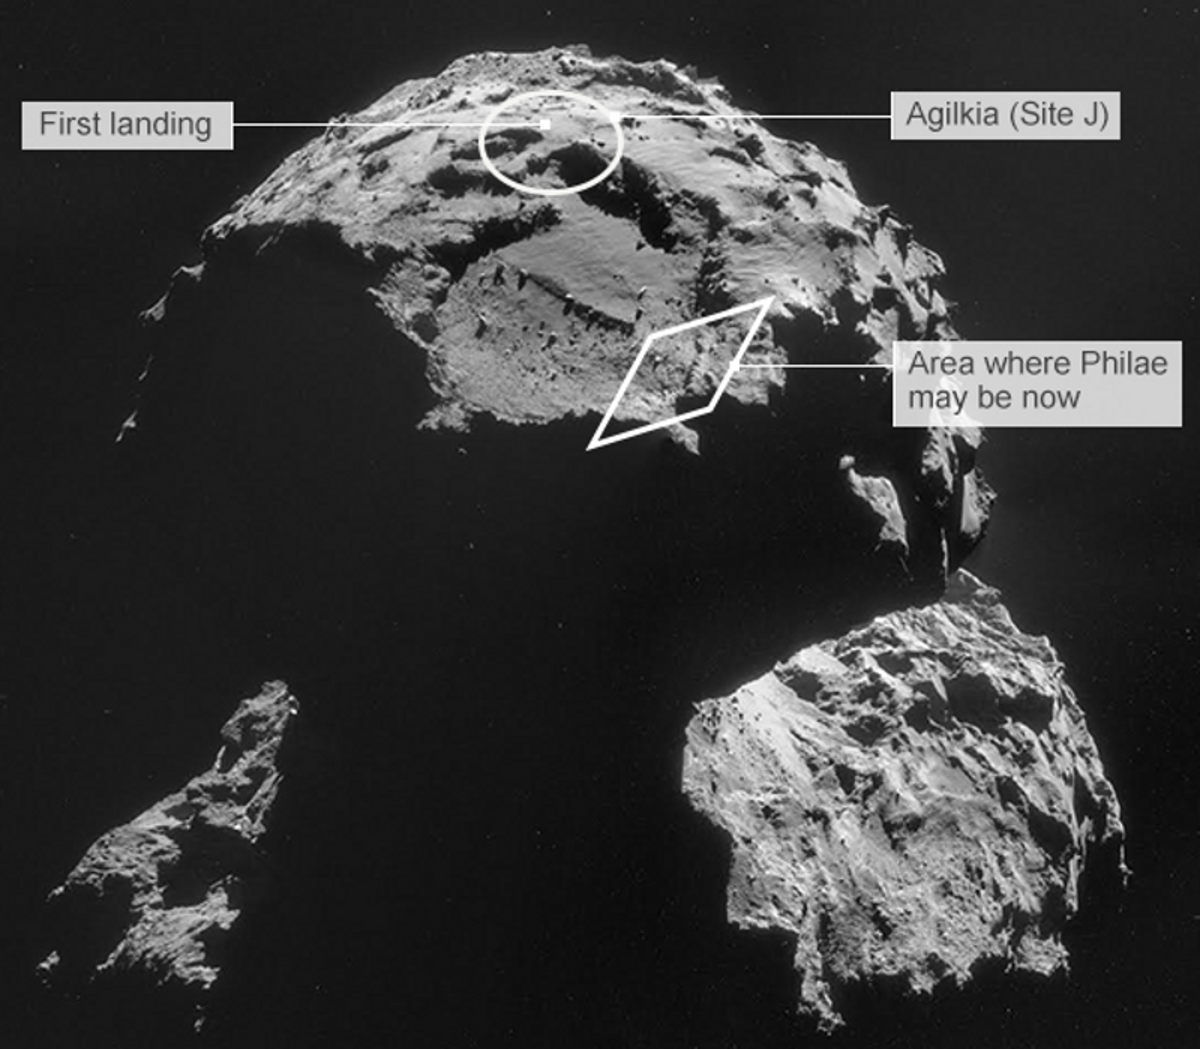 philae lander location